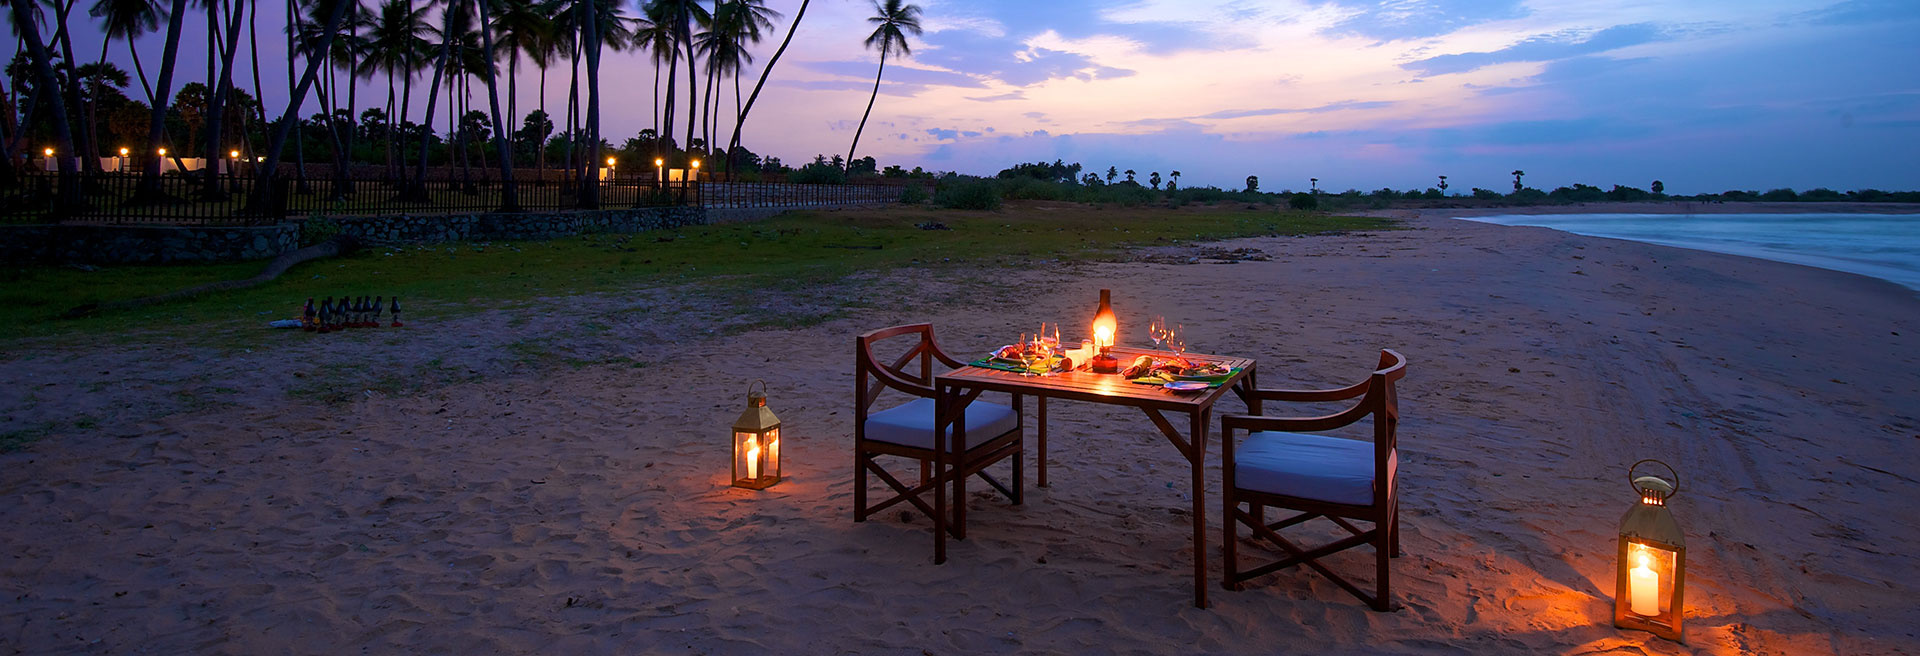 Signature Dining experience on the beach